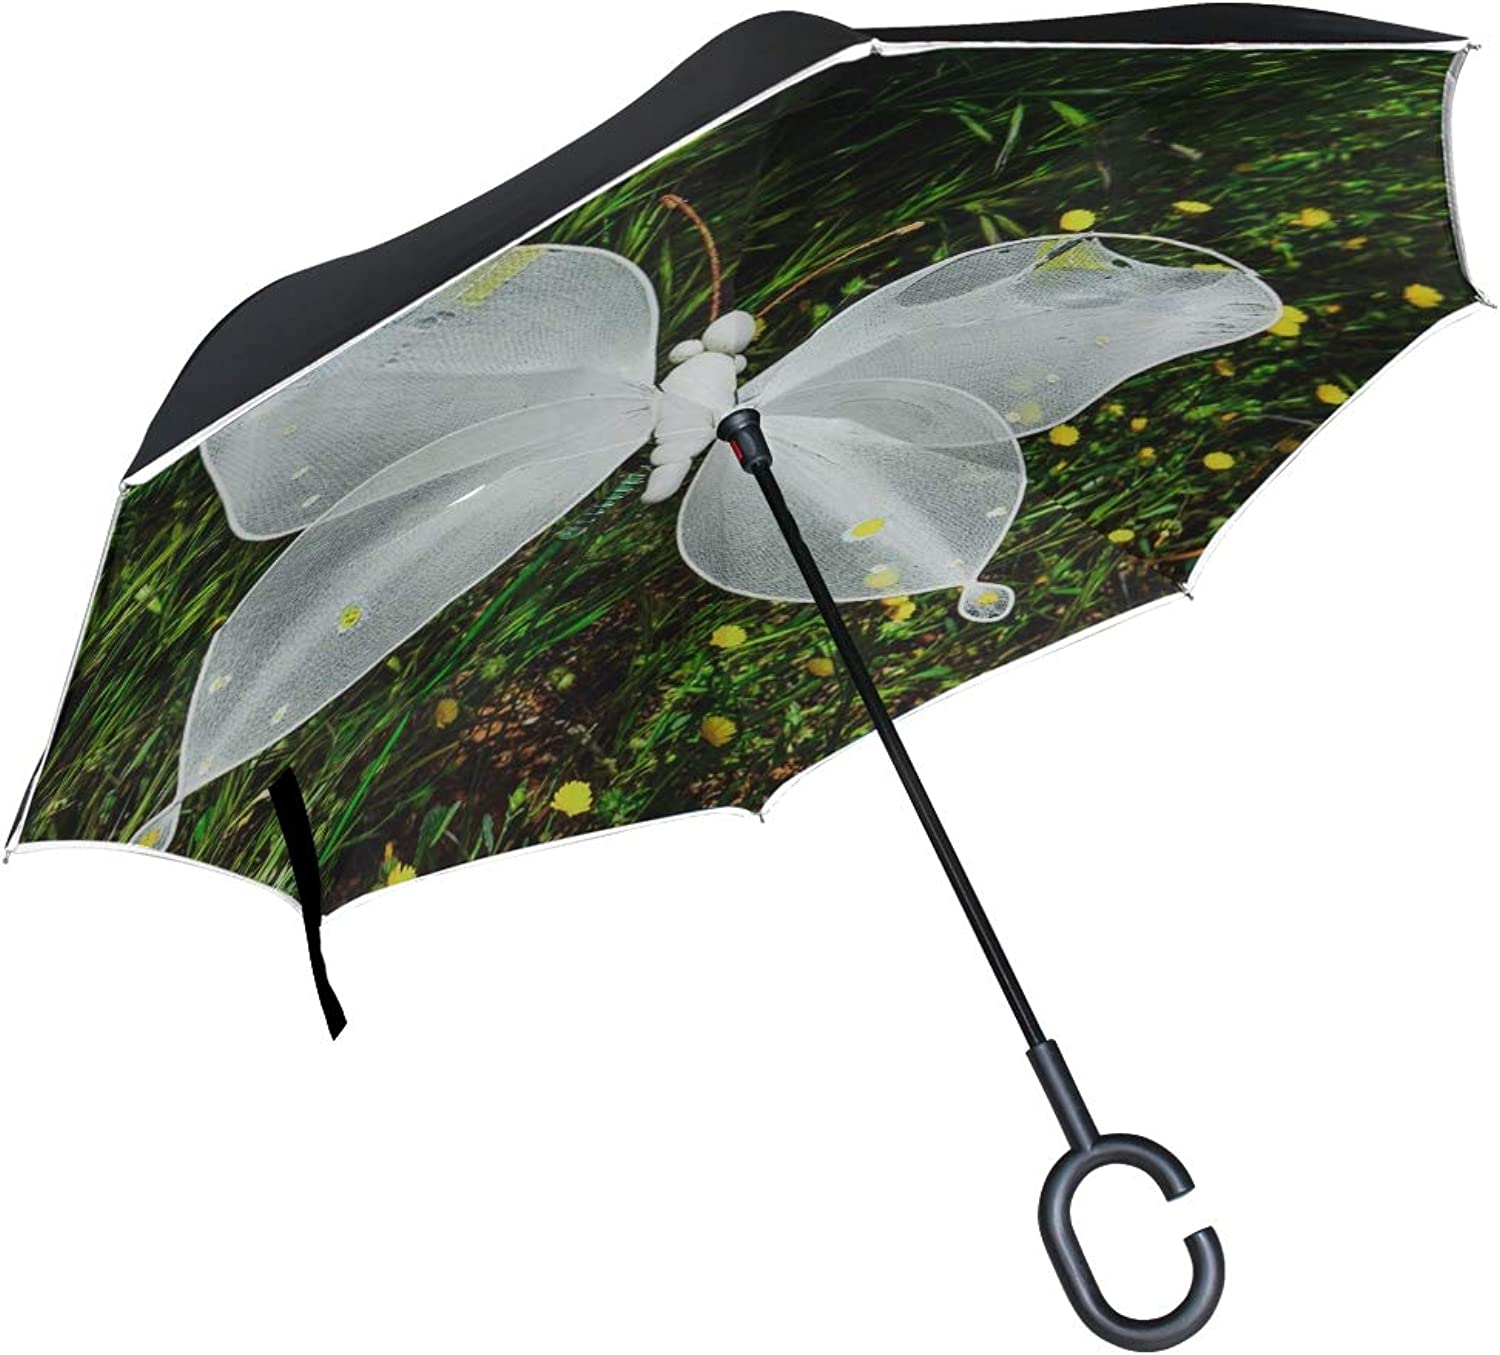 Double Layer Ingreened Butterfly Garden Nature Spring Decorative Umbrellas Reverse Folding Umbrella Windproof Uv Predection Big Straight Umbrella for Car Rain Outdoor with CShaped Handle